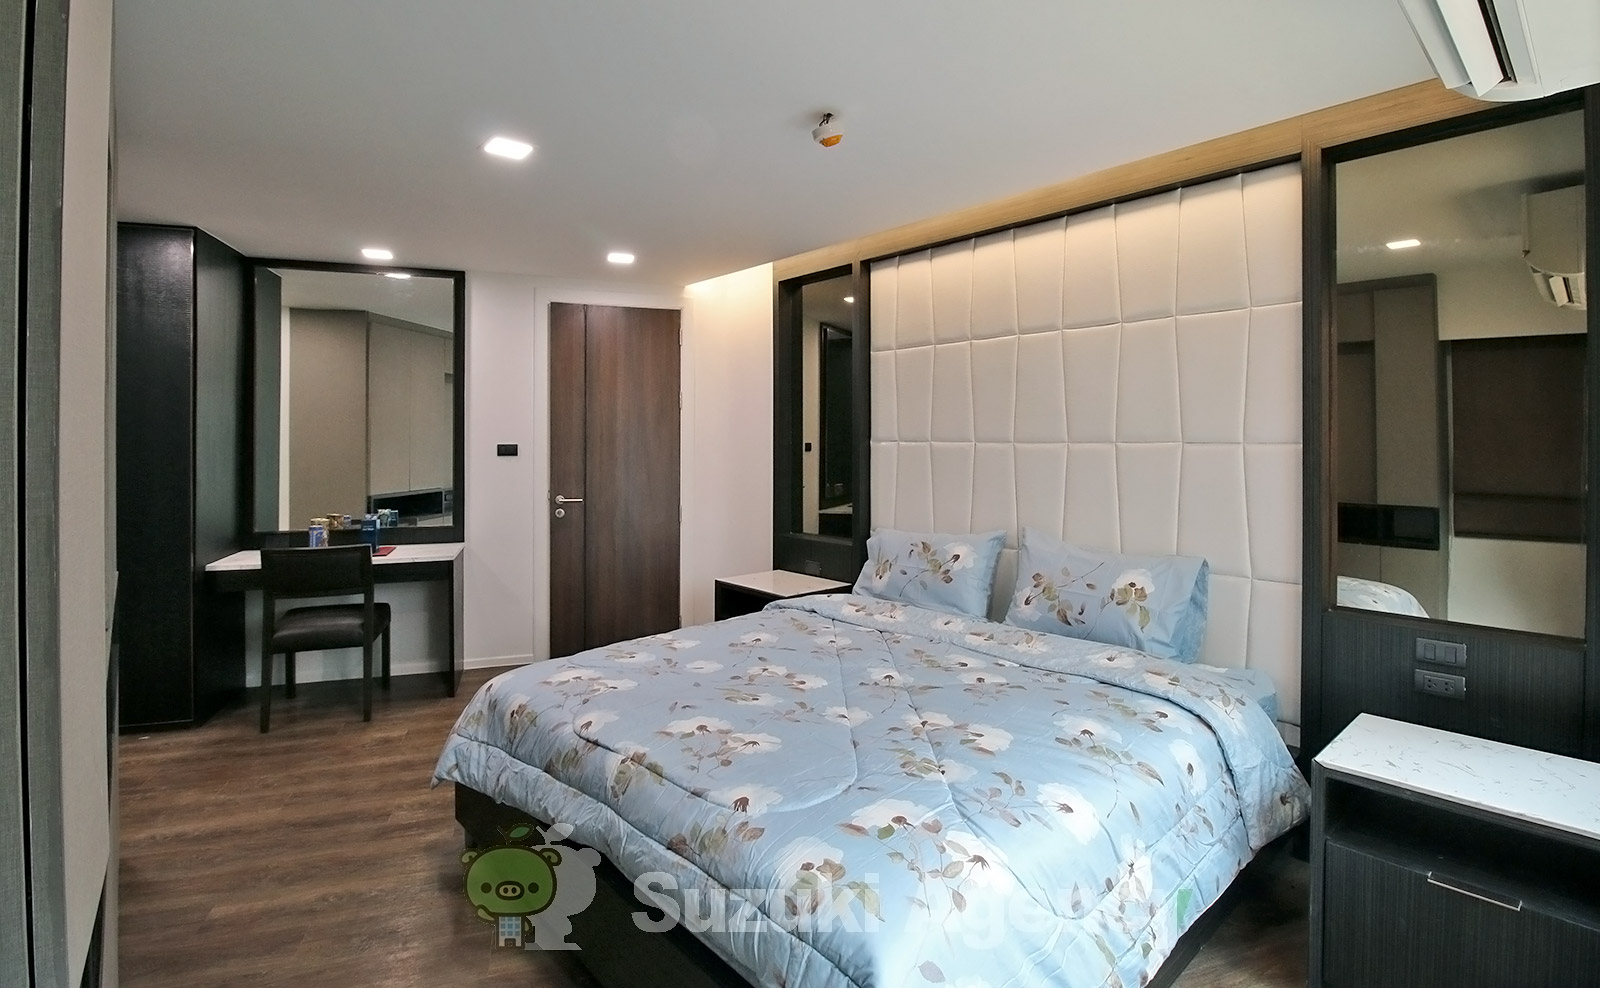 Kasturi Residence:2Bed Room Photos No.8